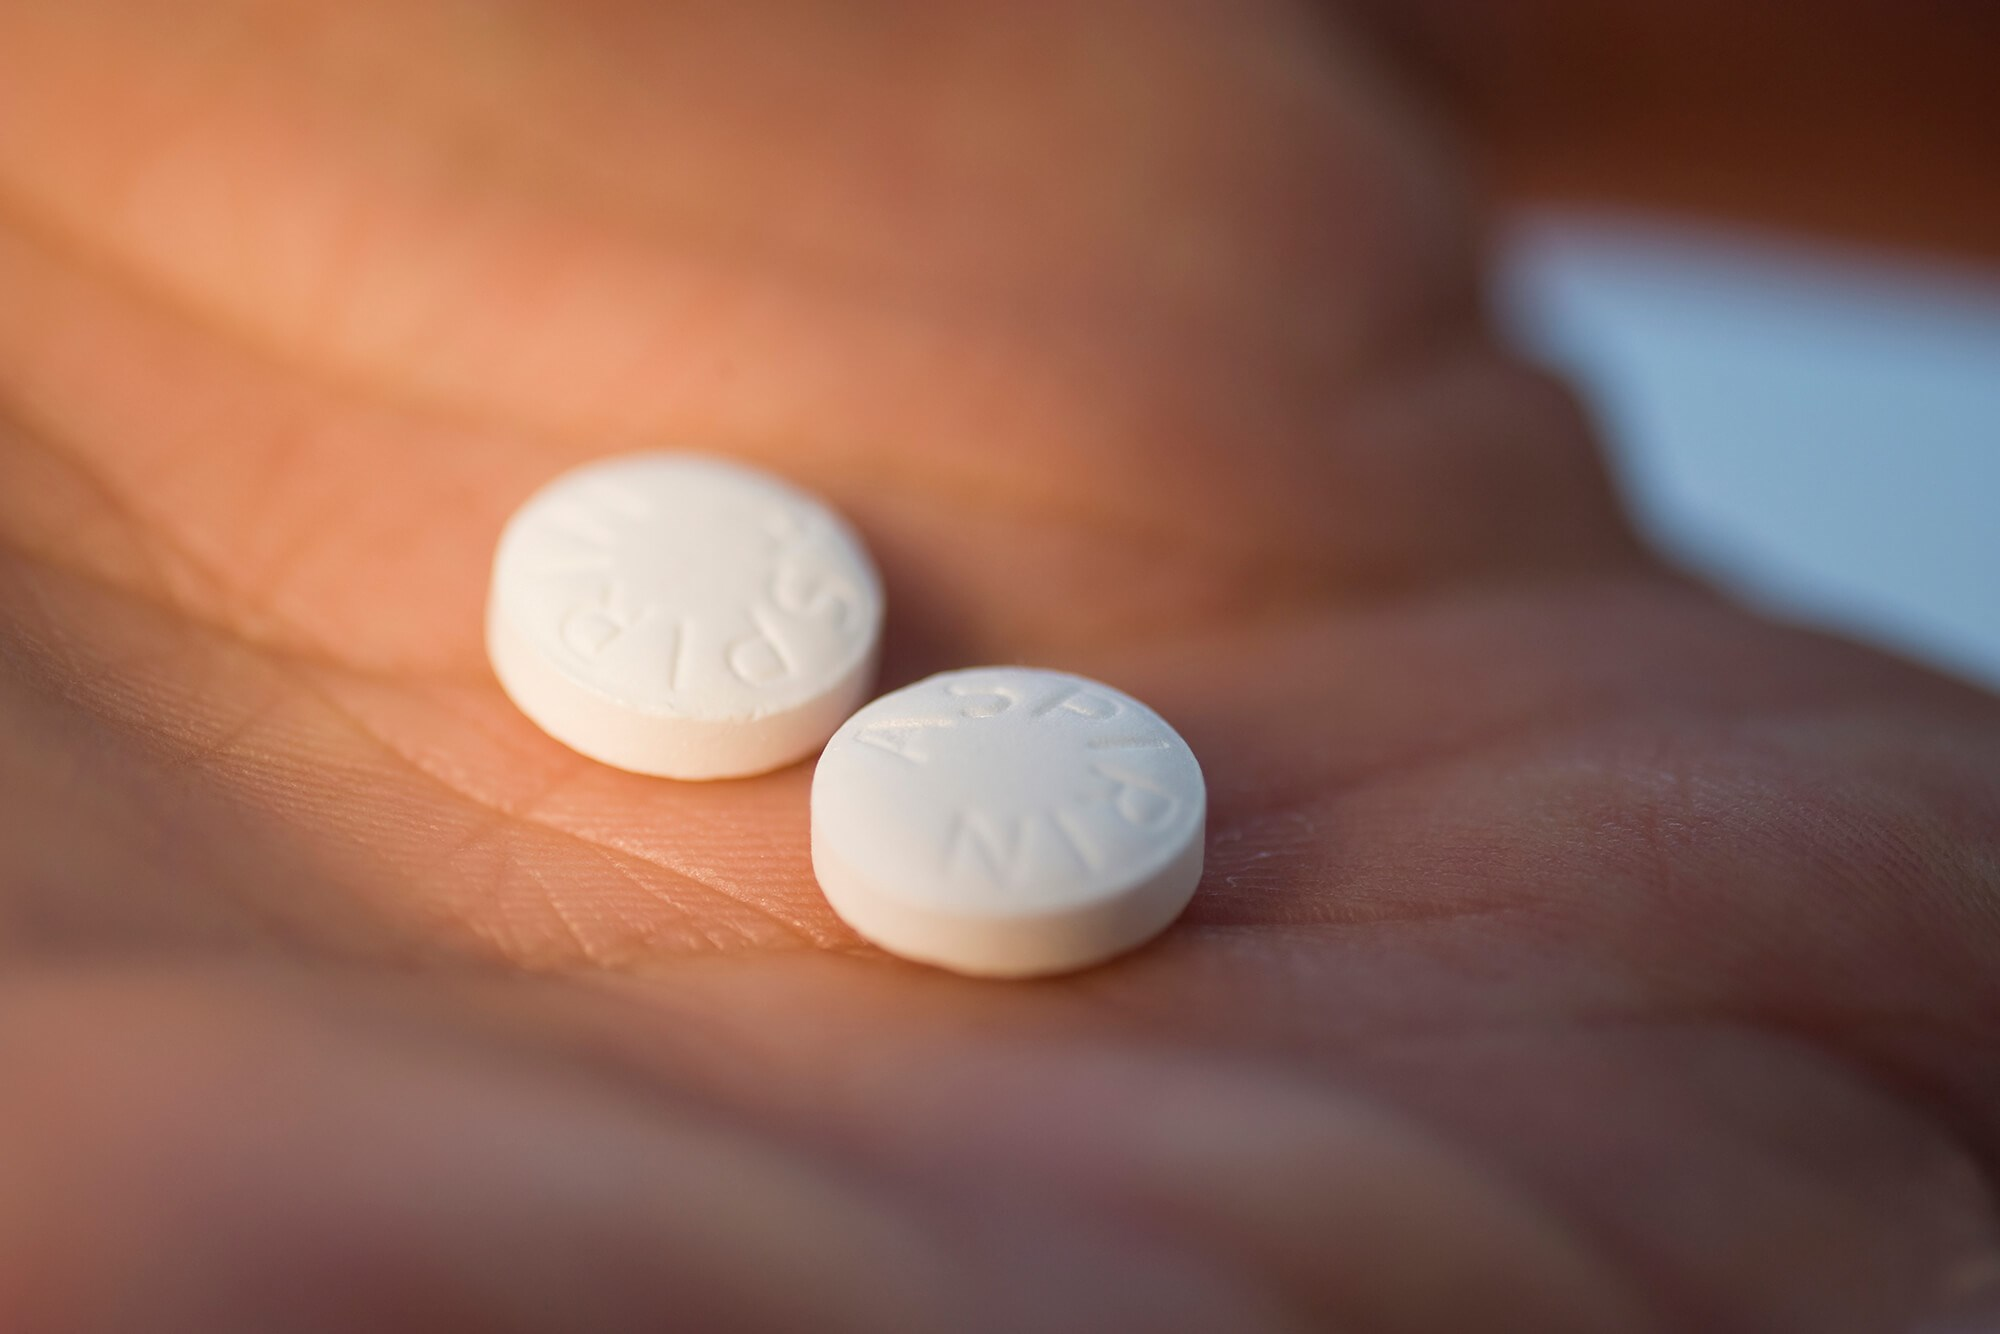 Low-Dose Aspirin May Lower Ovarian Cancer Risk